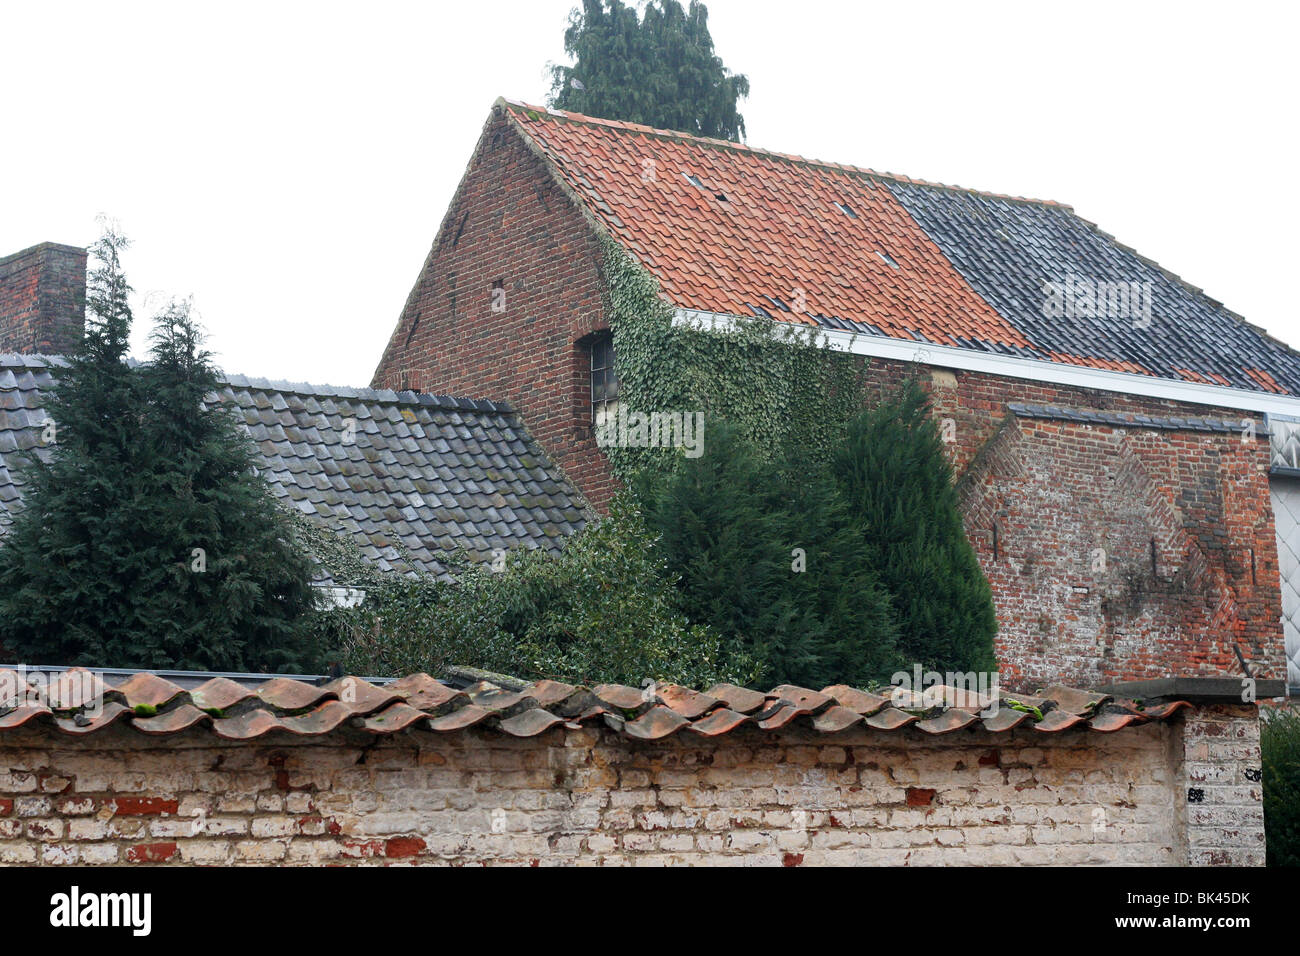 Old roofs in Chievres, Belgium